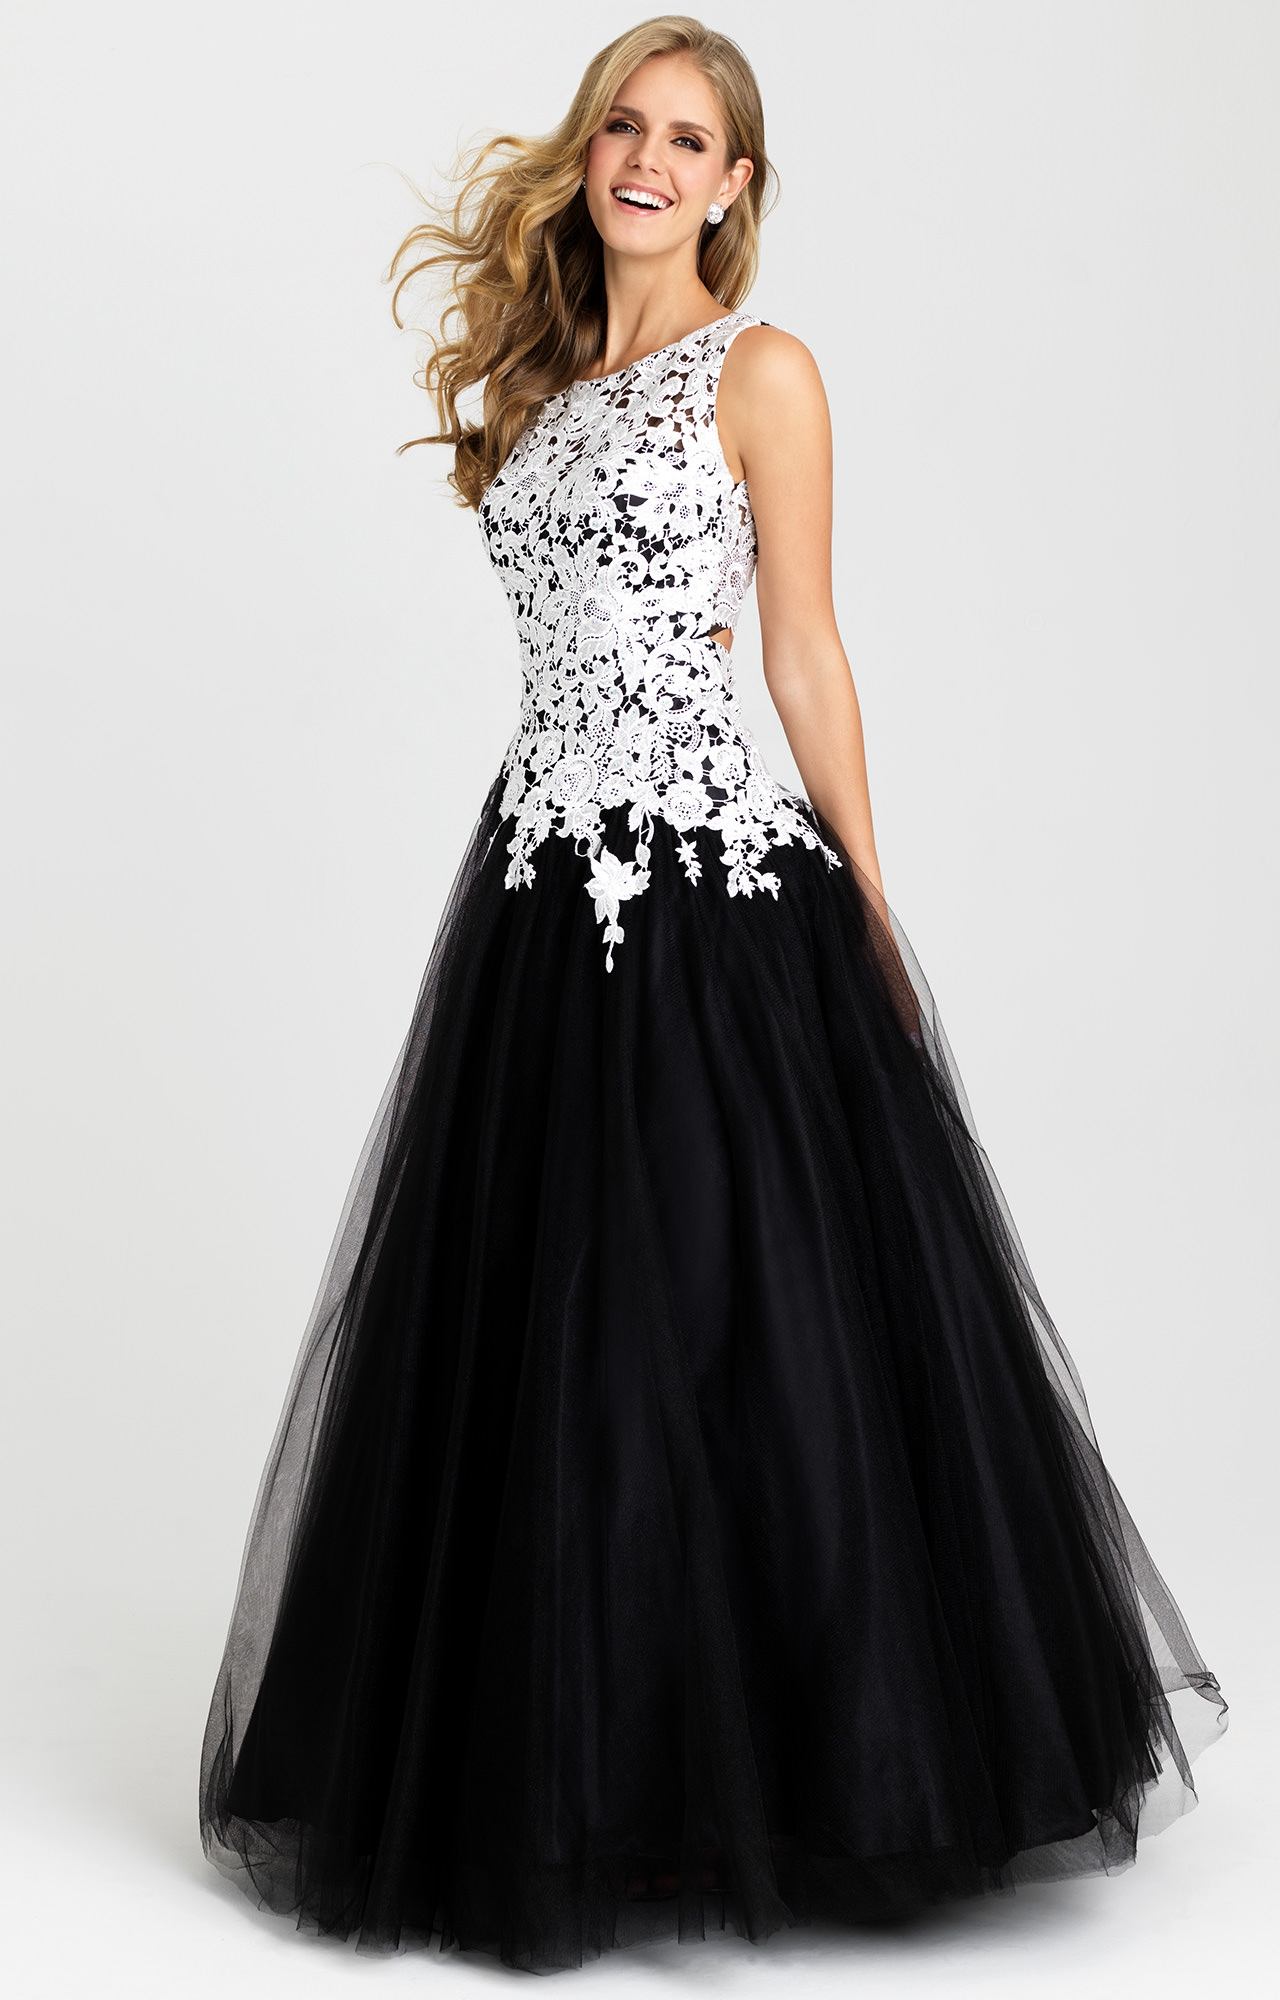 Madison James 16-342 - Champagne and Caviar Gown Prom Dress